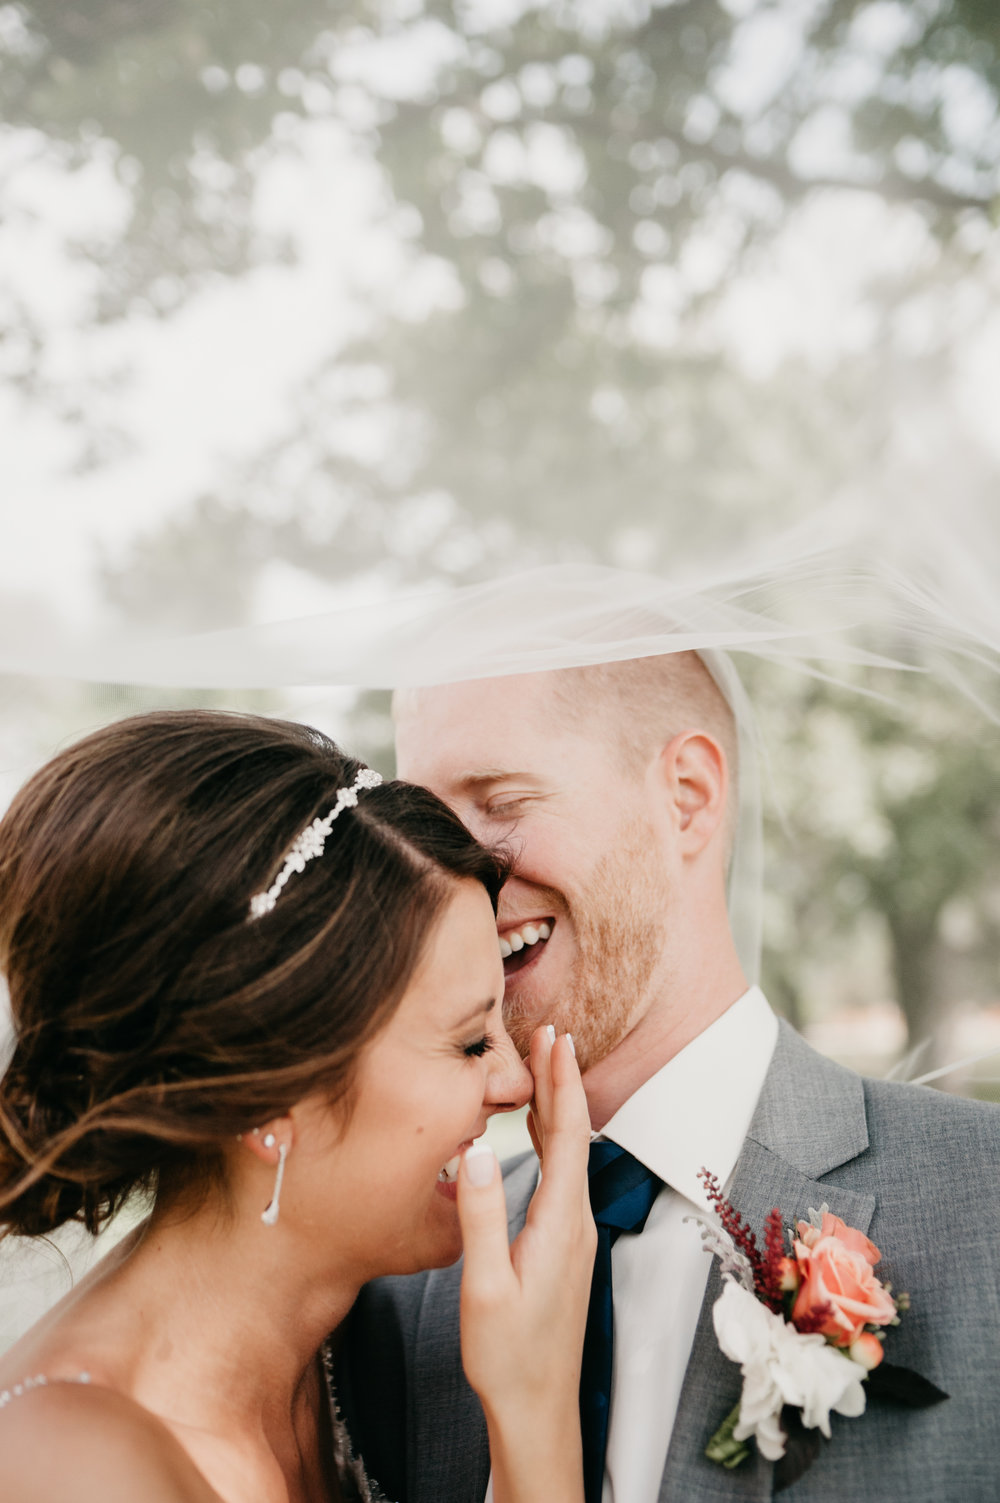 Mpls weddng photography-450.jpg